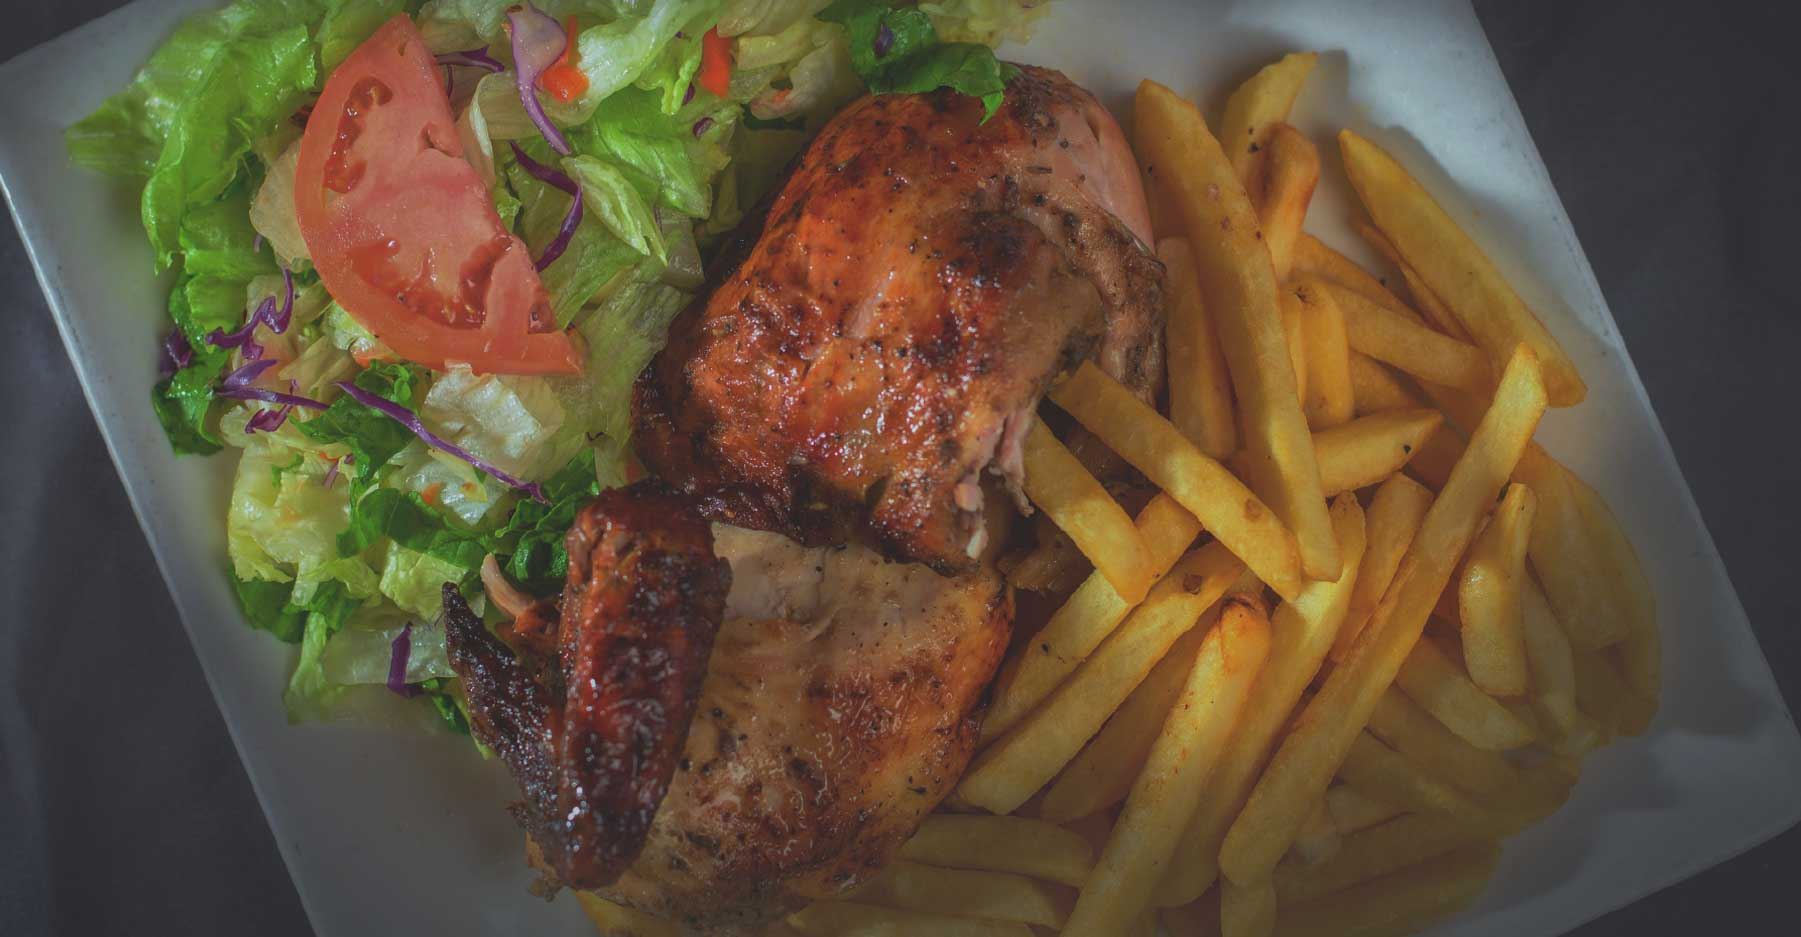 plate of chicken with fries and salad